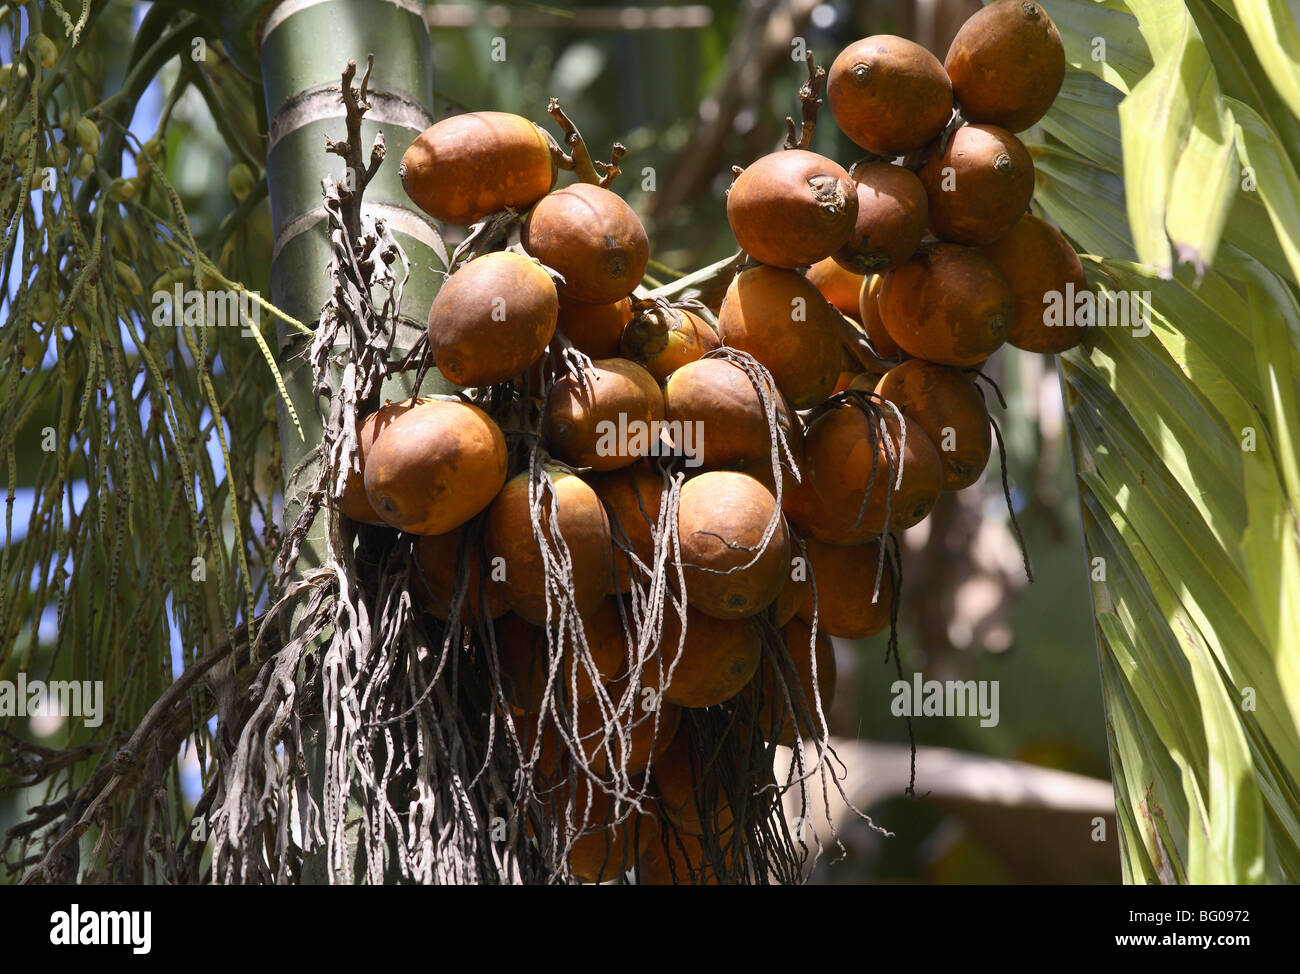 Betel nut, reported to be anti-parasitic, laxative, it also increases heart rate and blood pressure, India - Stock Image